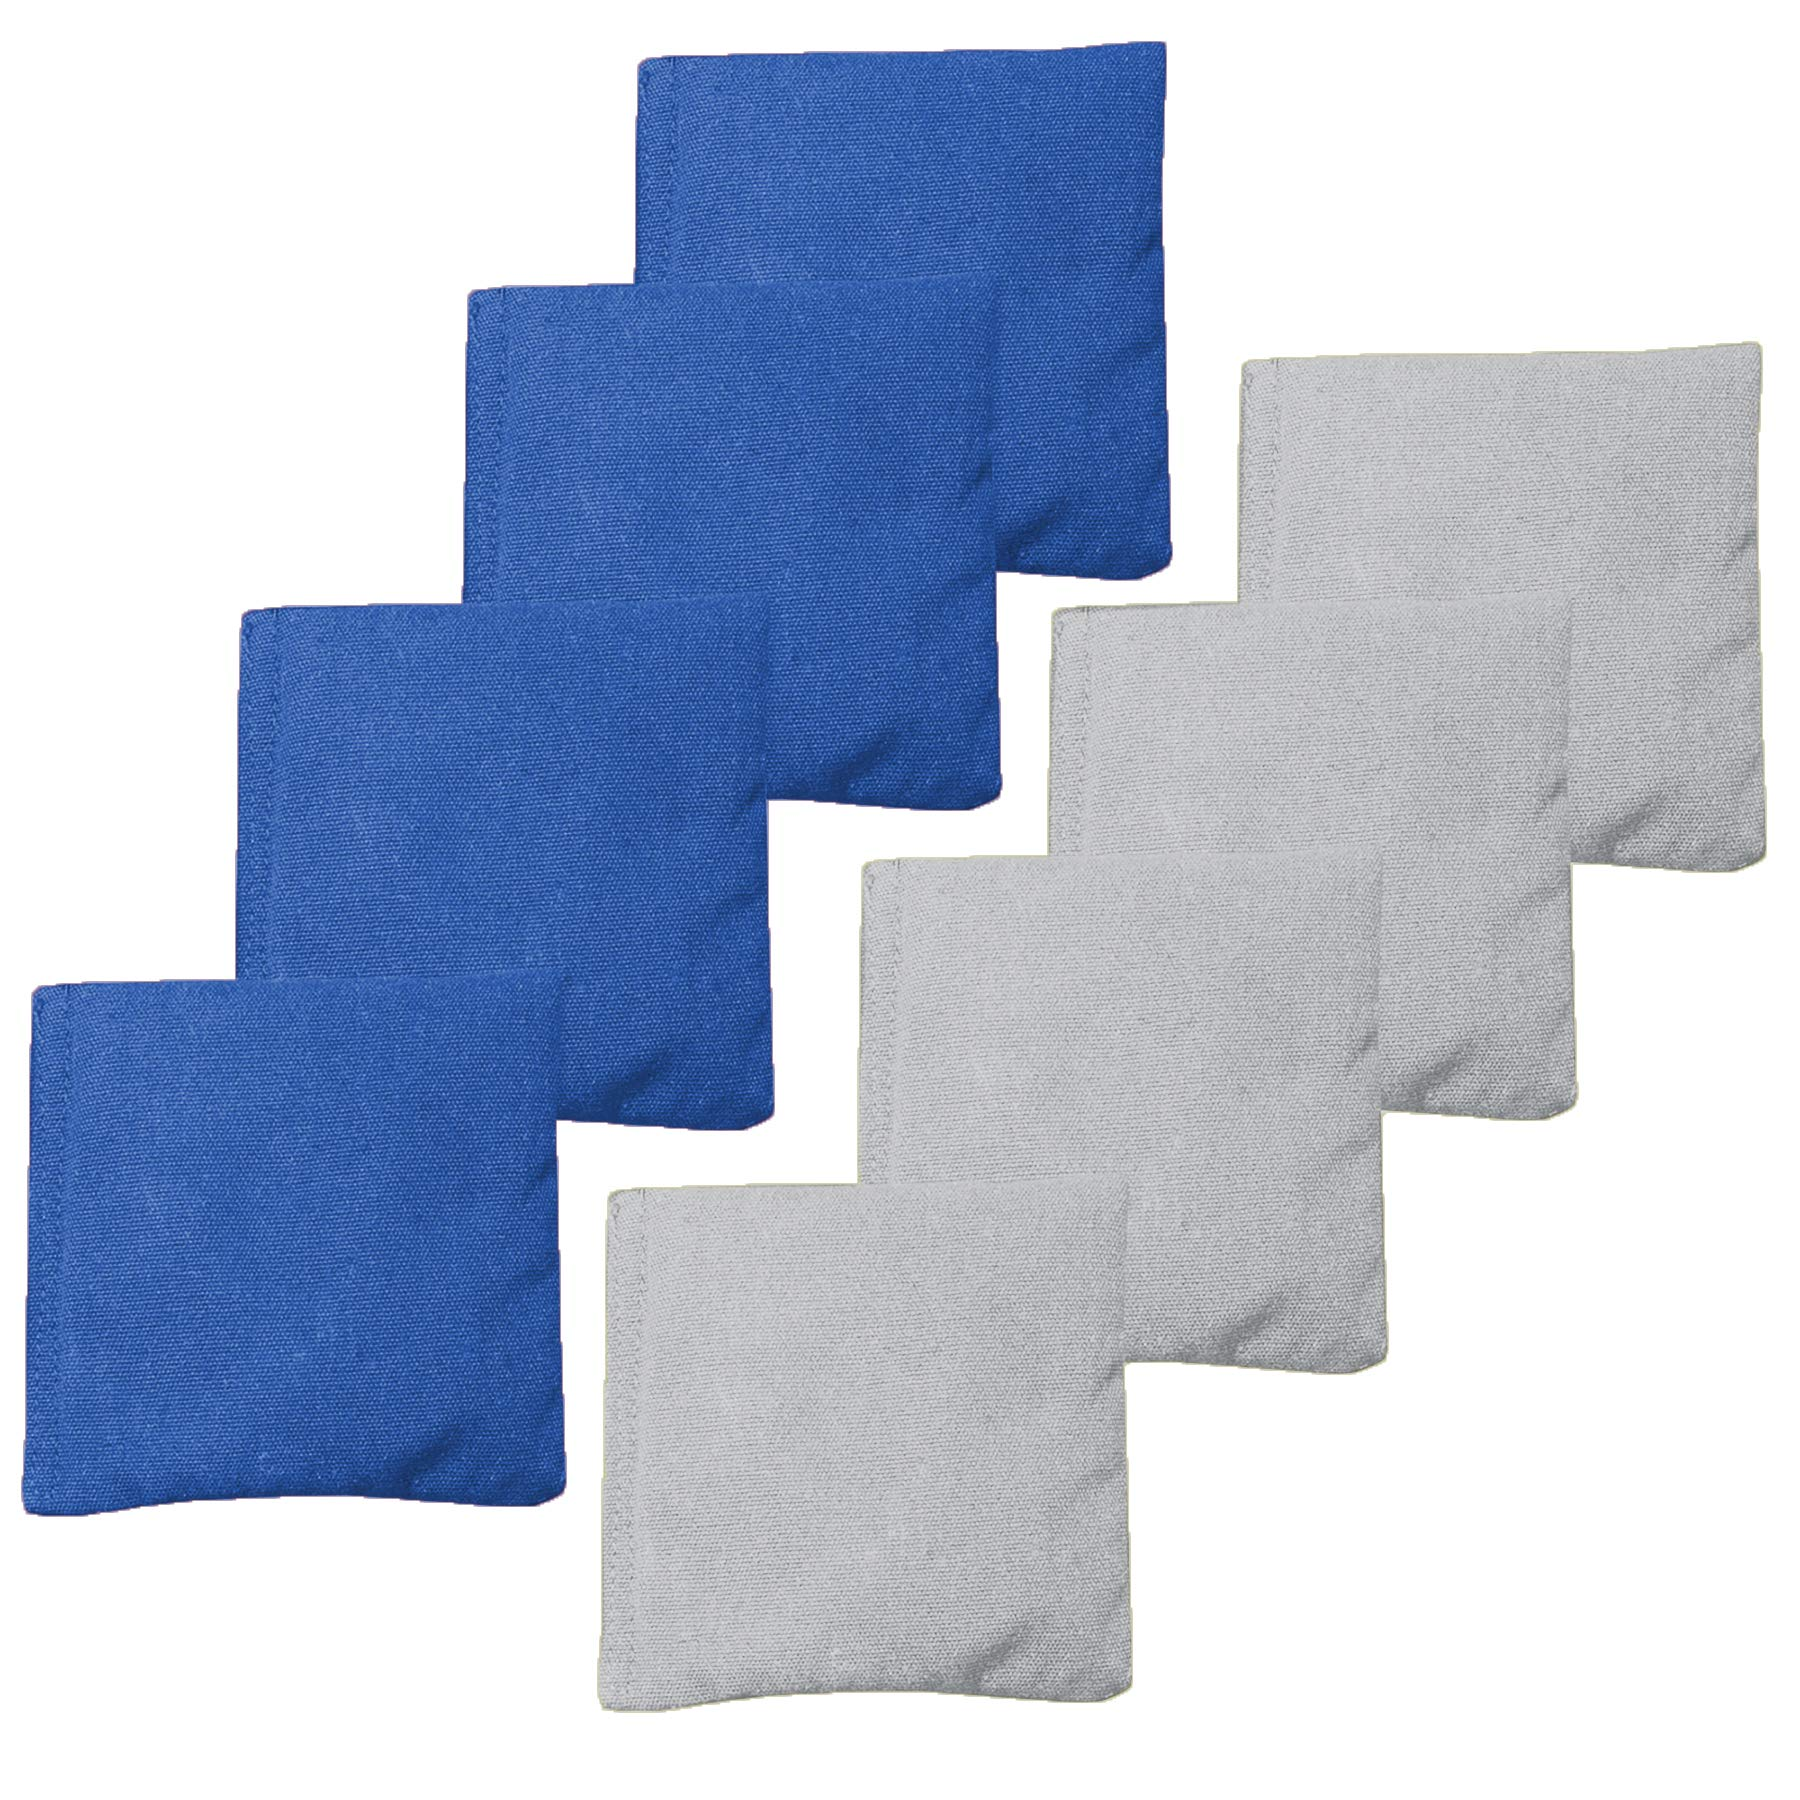 All Weather Cornhole Bean Bags Set of 8 - Duck Cloth, Regulation Size & Weight - Gray & Royal Blue